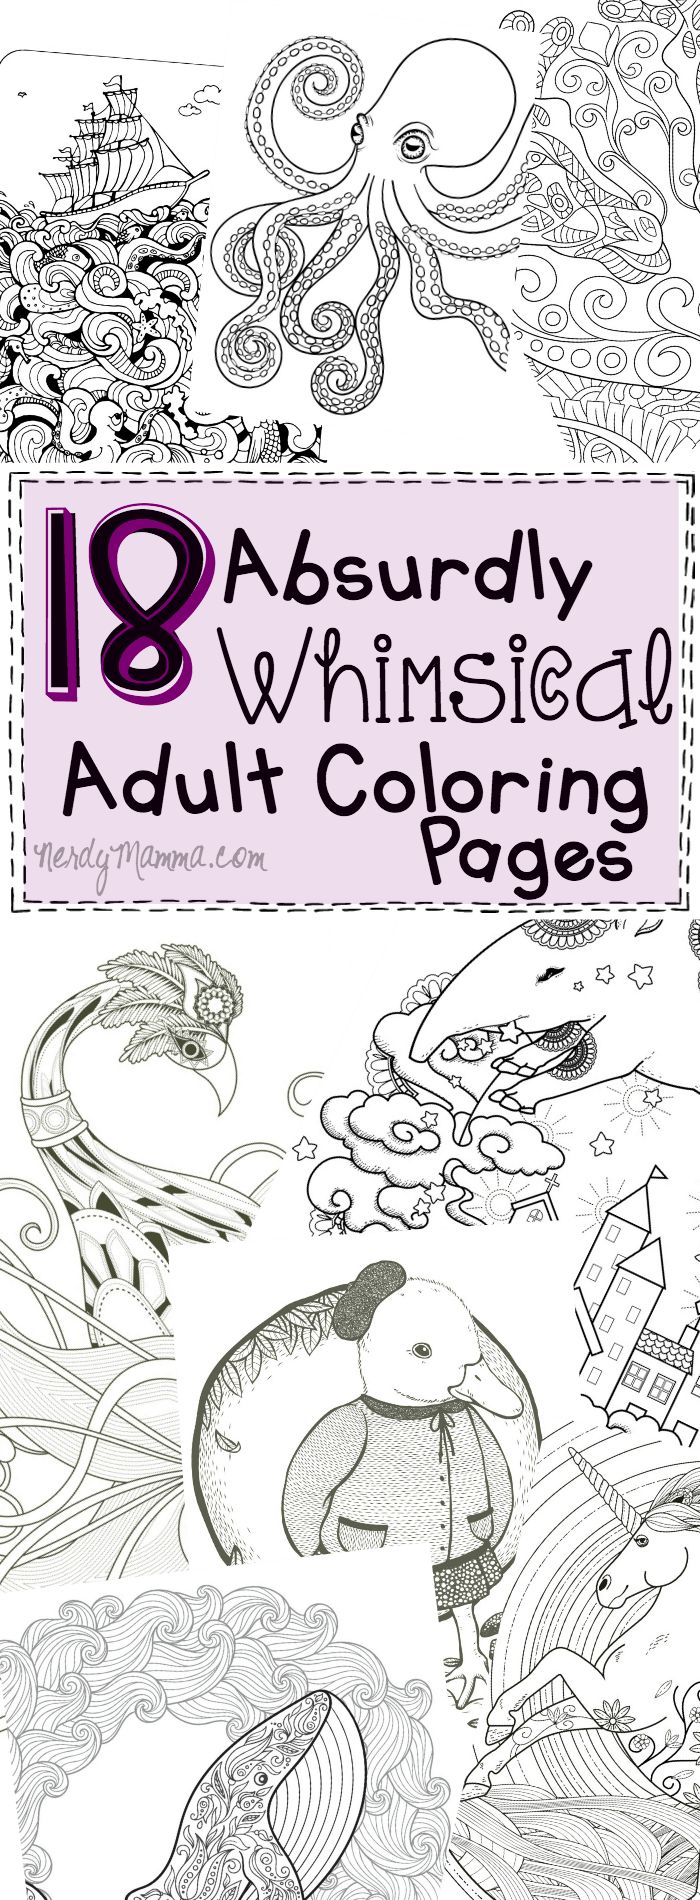 293 best coloriage images on pinterest coloring books coloring